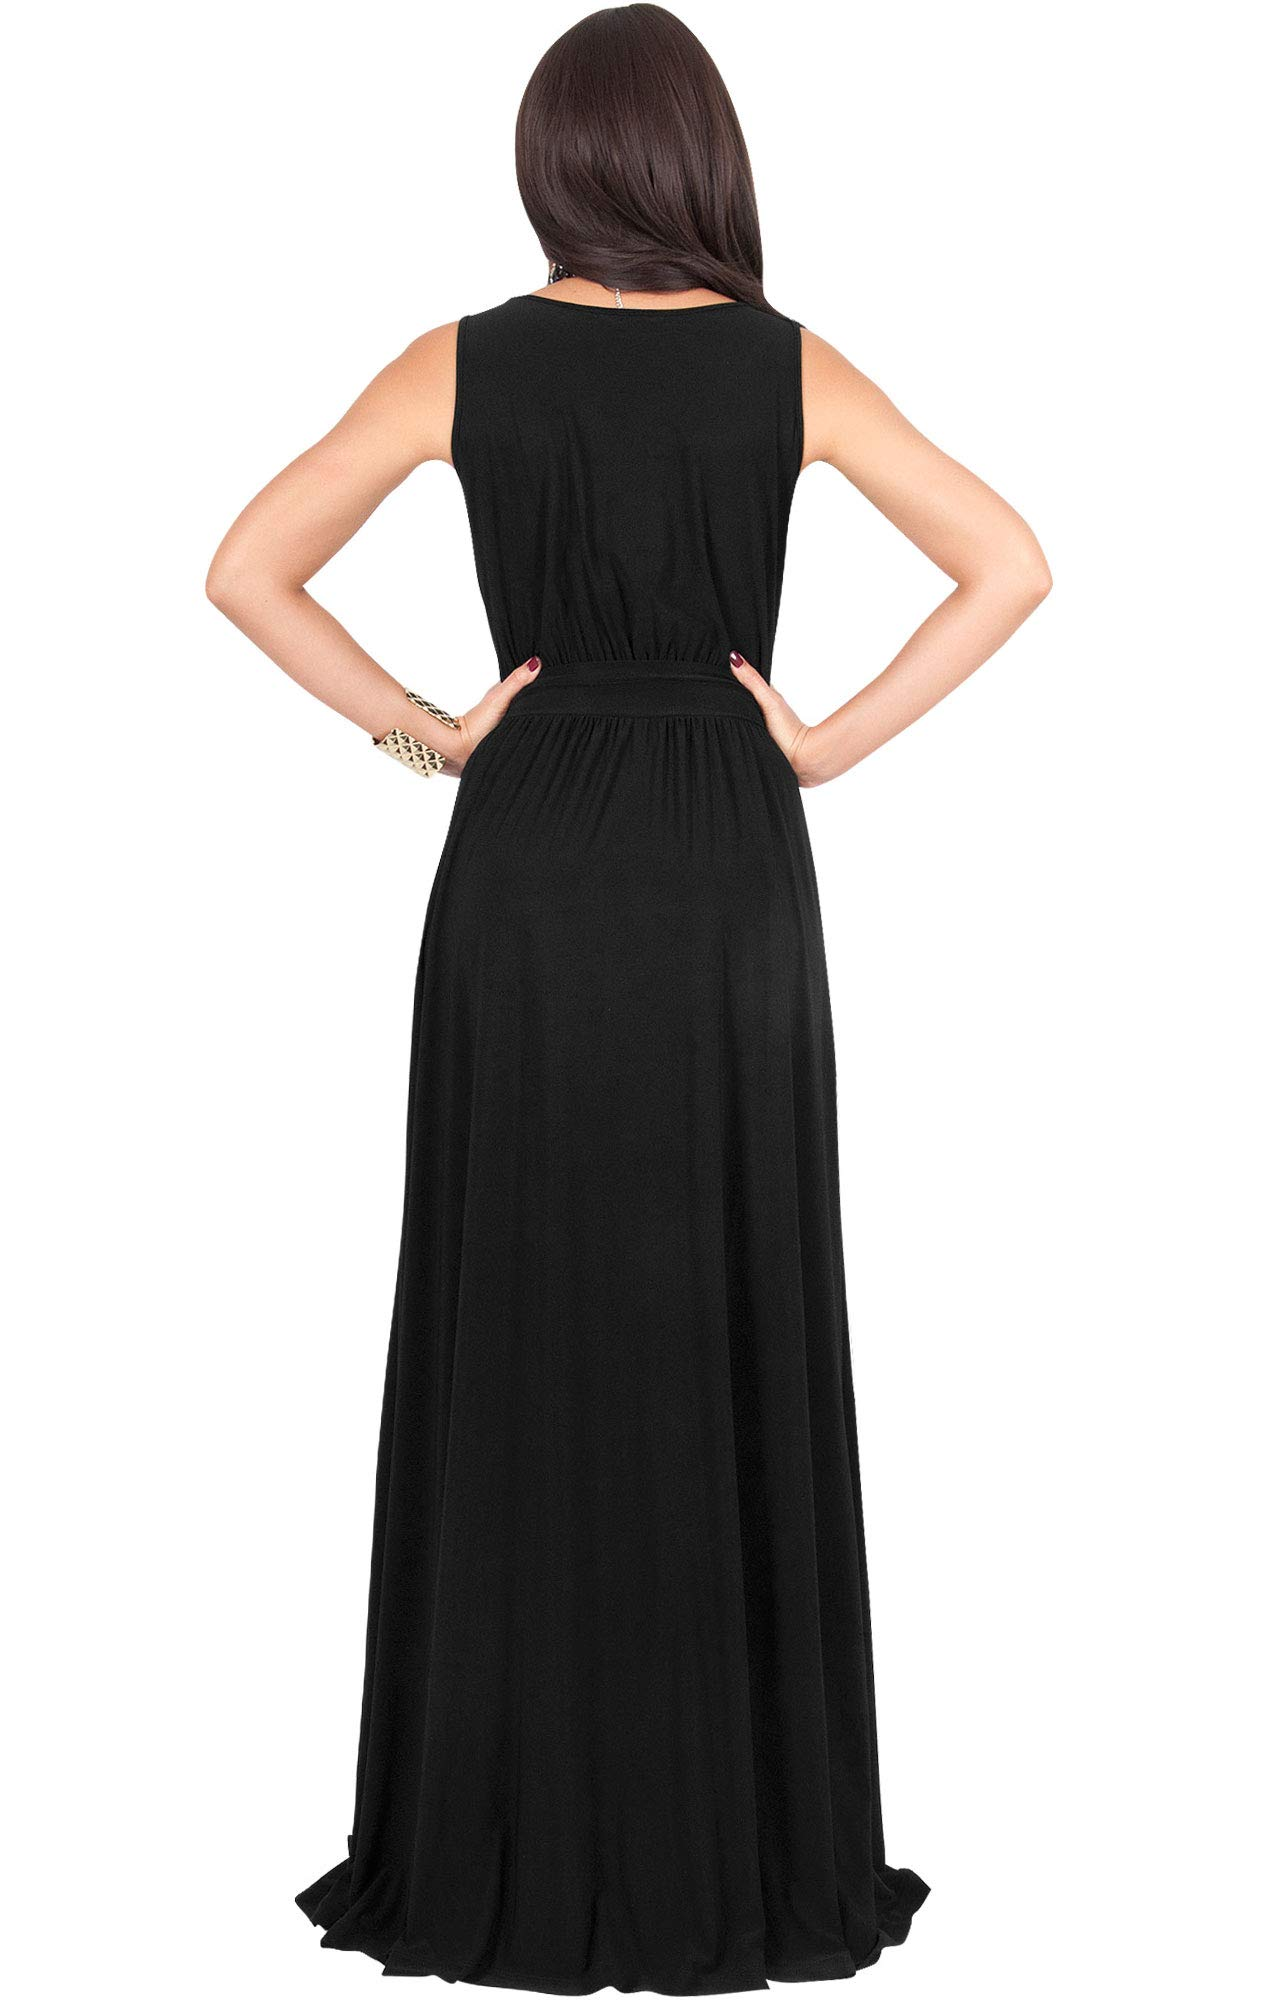 KOH KOH Womens Long Sleeveless Flowy Bridesmaids Cocktail Party Evening Formal Sexy Summer Wedding Guest Ball Prom Gown Gowns Maxi Dress Dresses, Black L 12-14 by KOH KOH (Image #6)